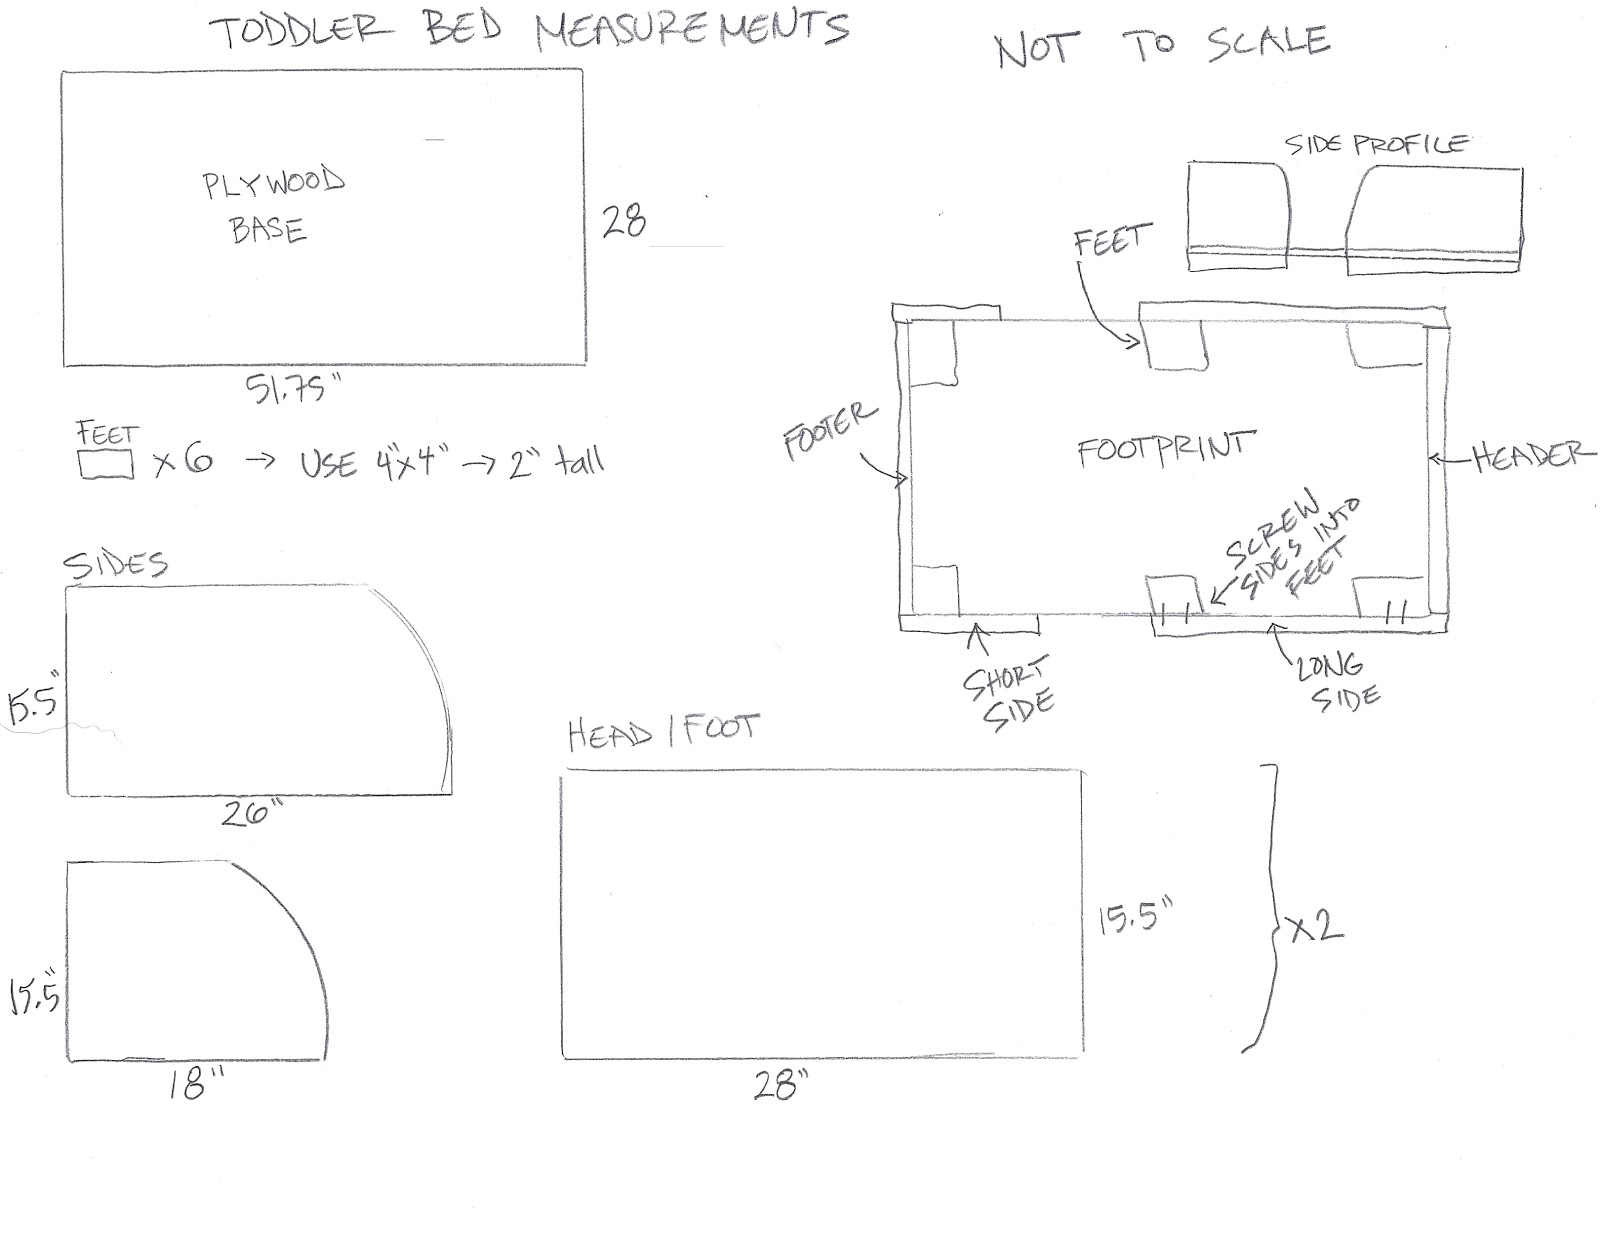 Toddler Bed Dimensions Changes: 5 Actionable Tips | Roole